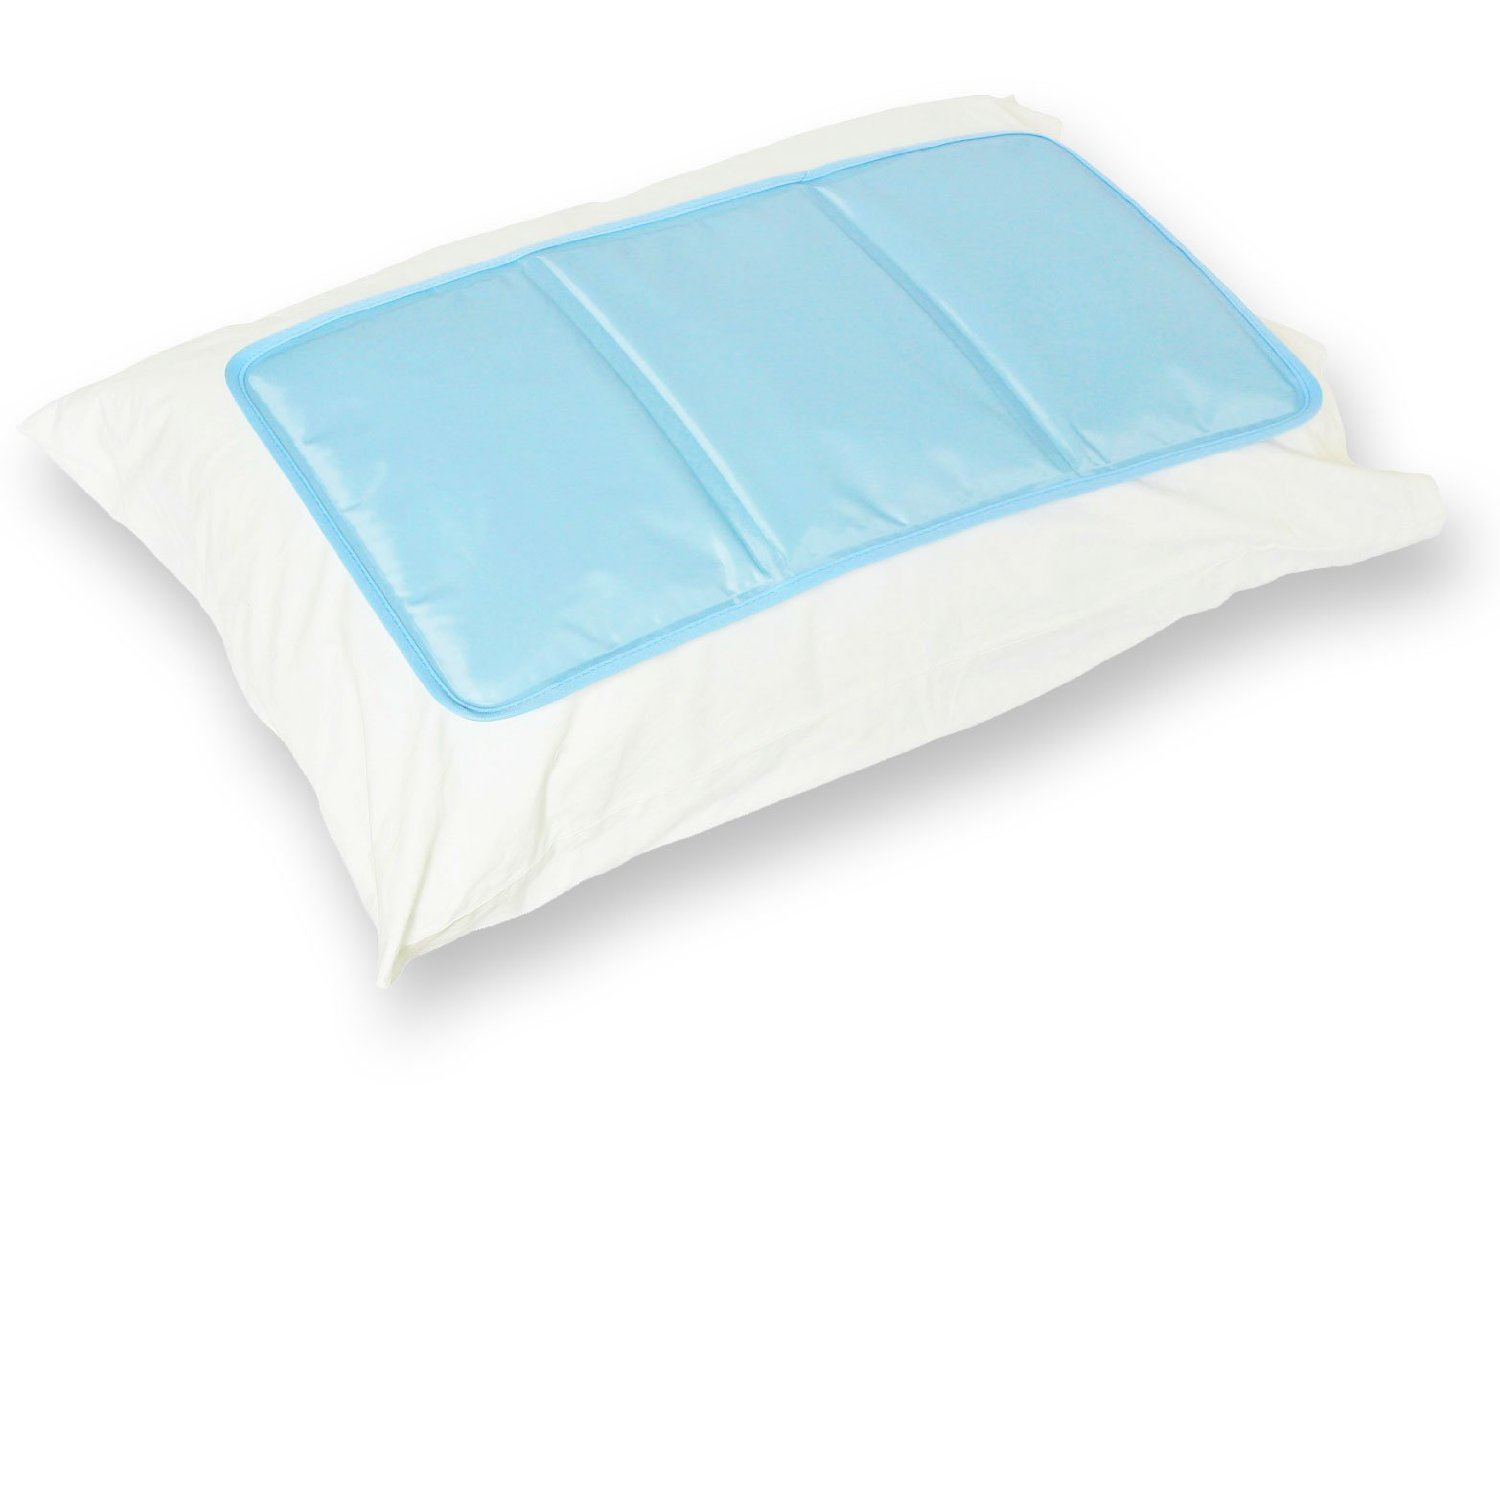 Never Pay Full Price Product Review PolarGel Cool Pillow Mat